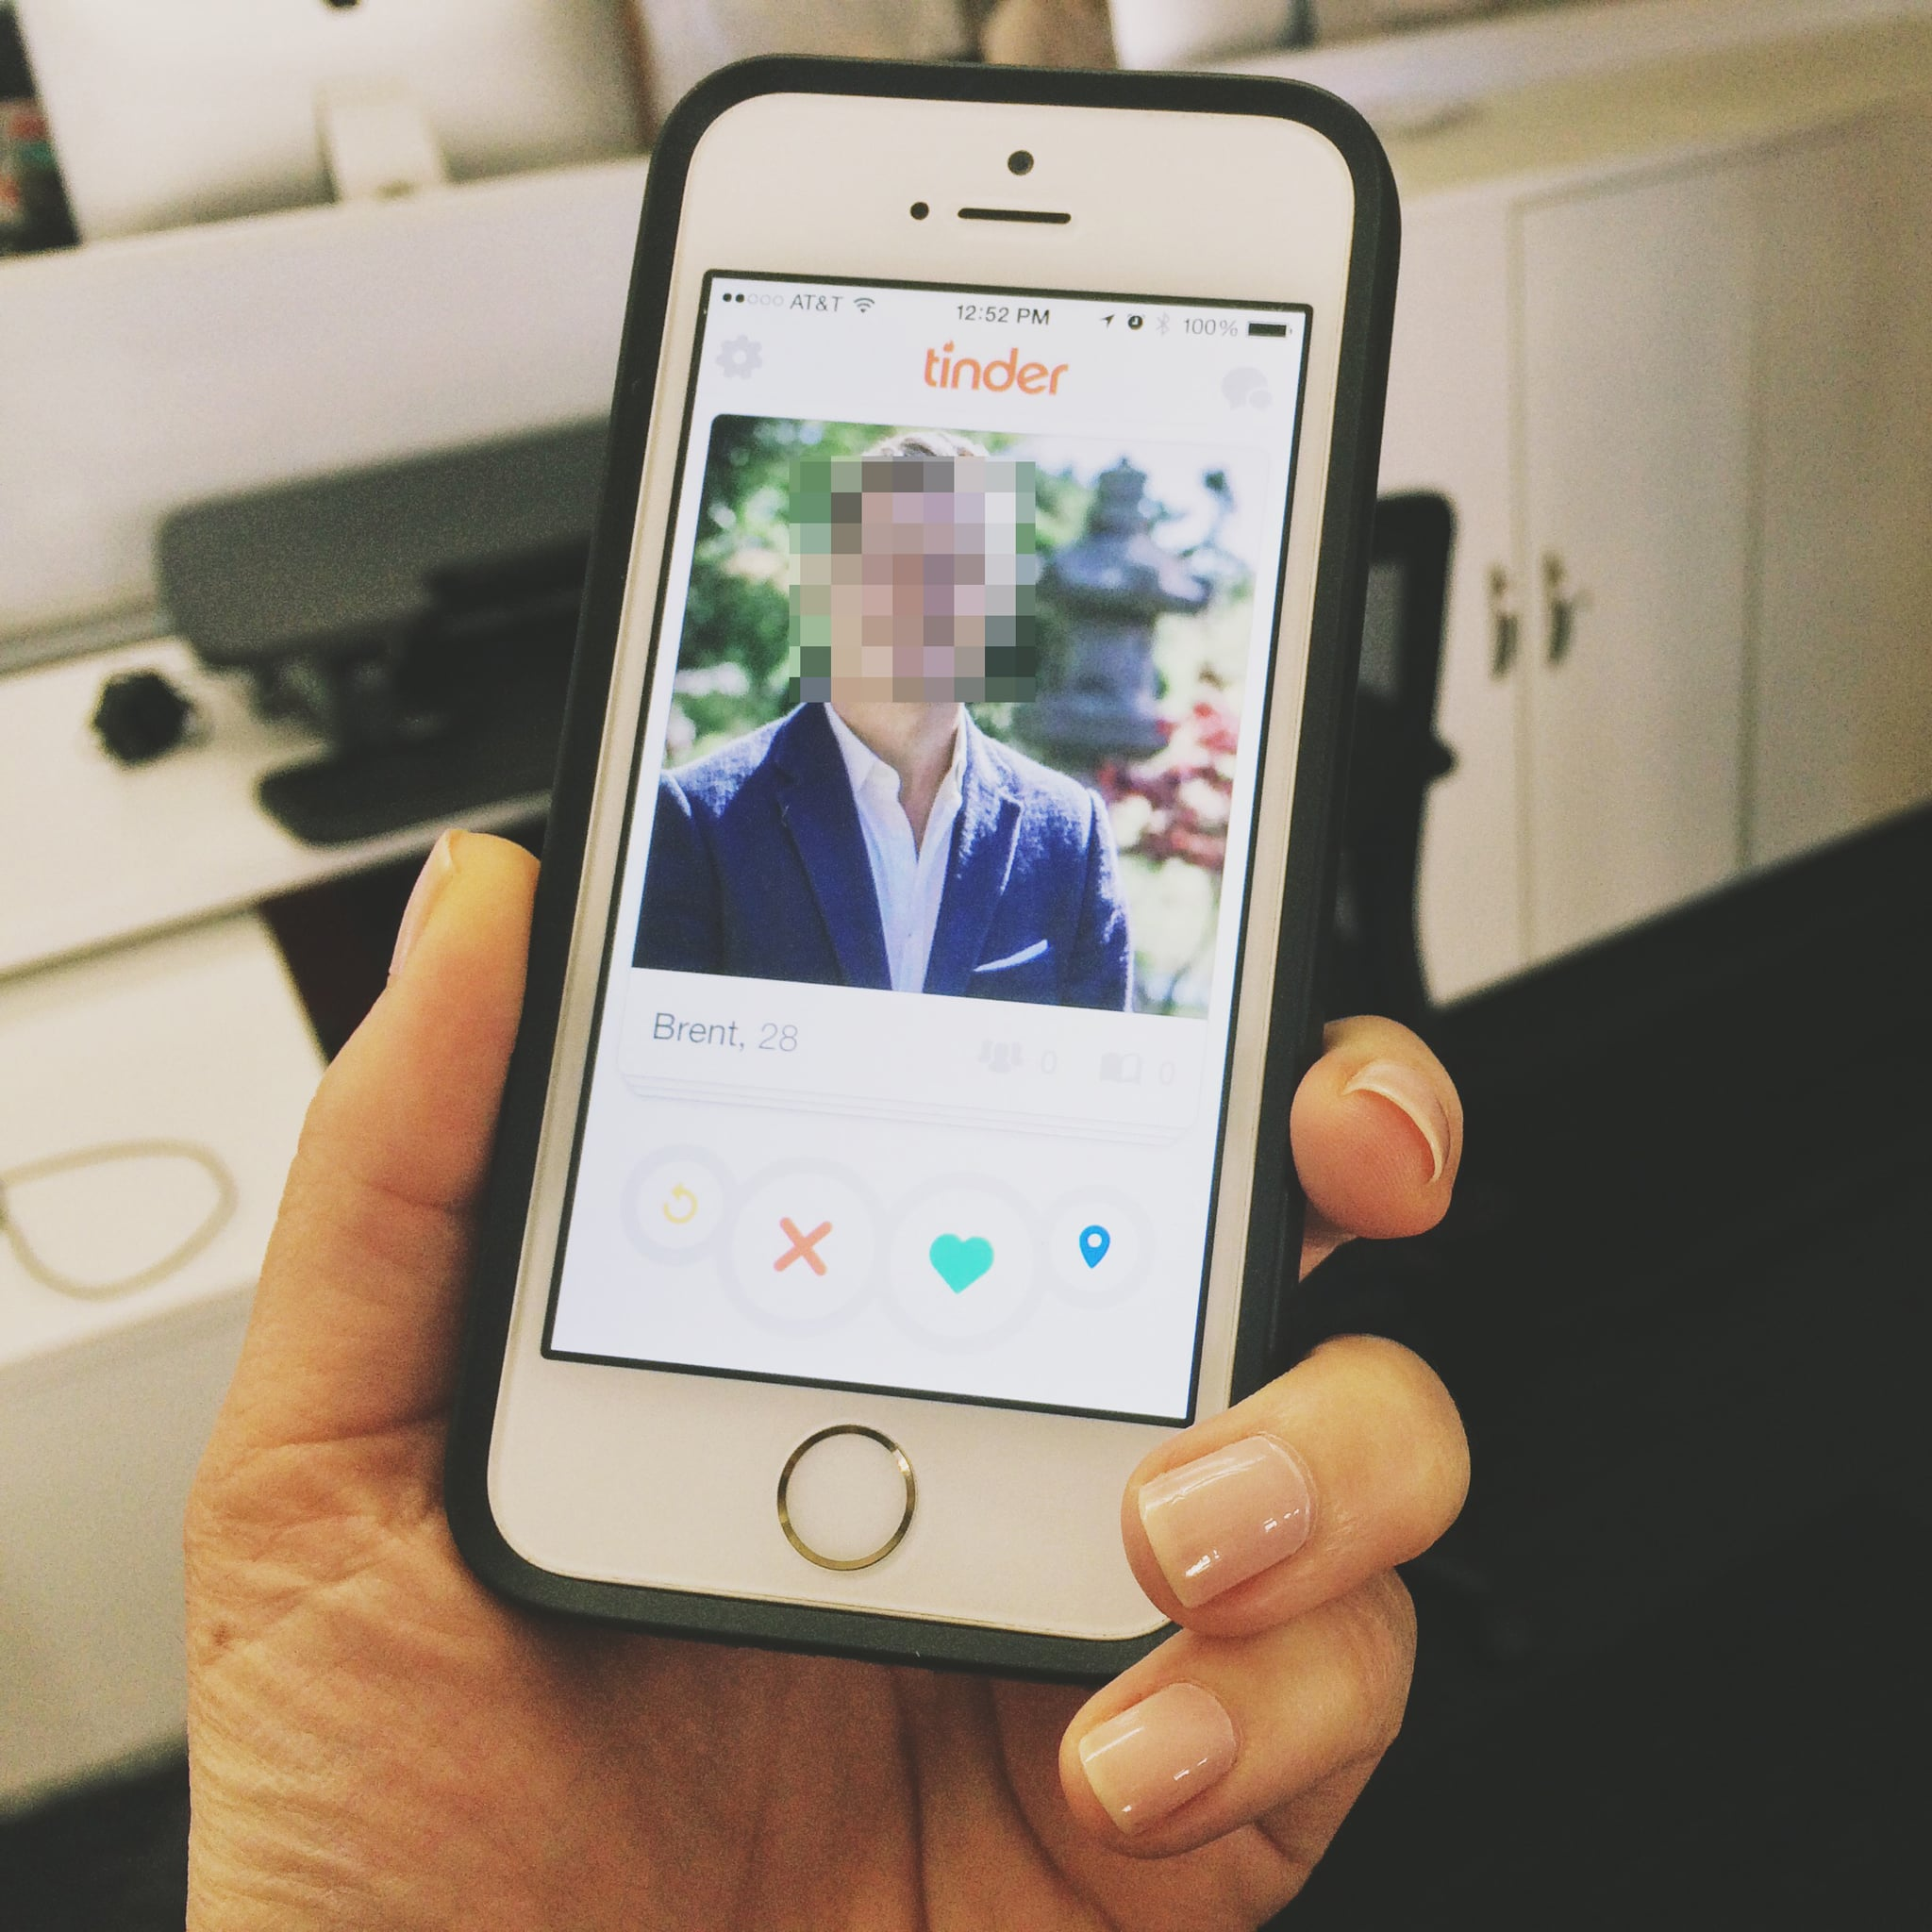 If you're addicted to Tinder, you may have noticed the dating app has a new  look. There's now a rewind and location button next to the red X and green  heart ...